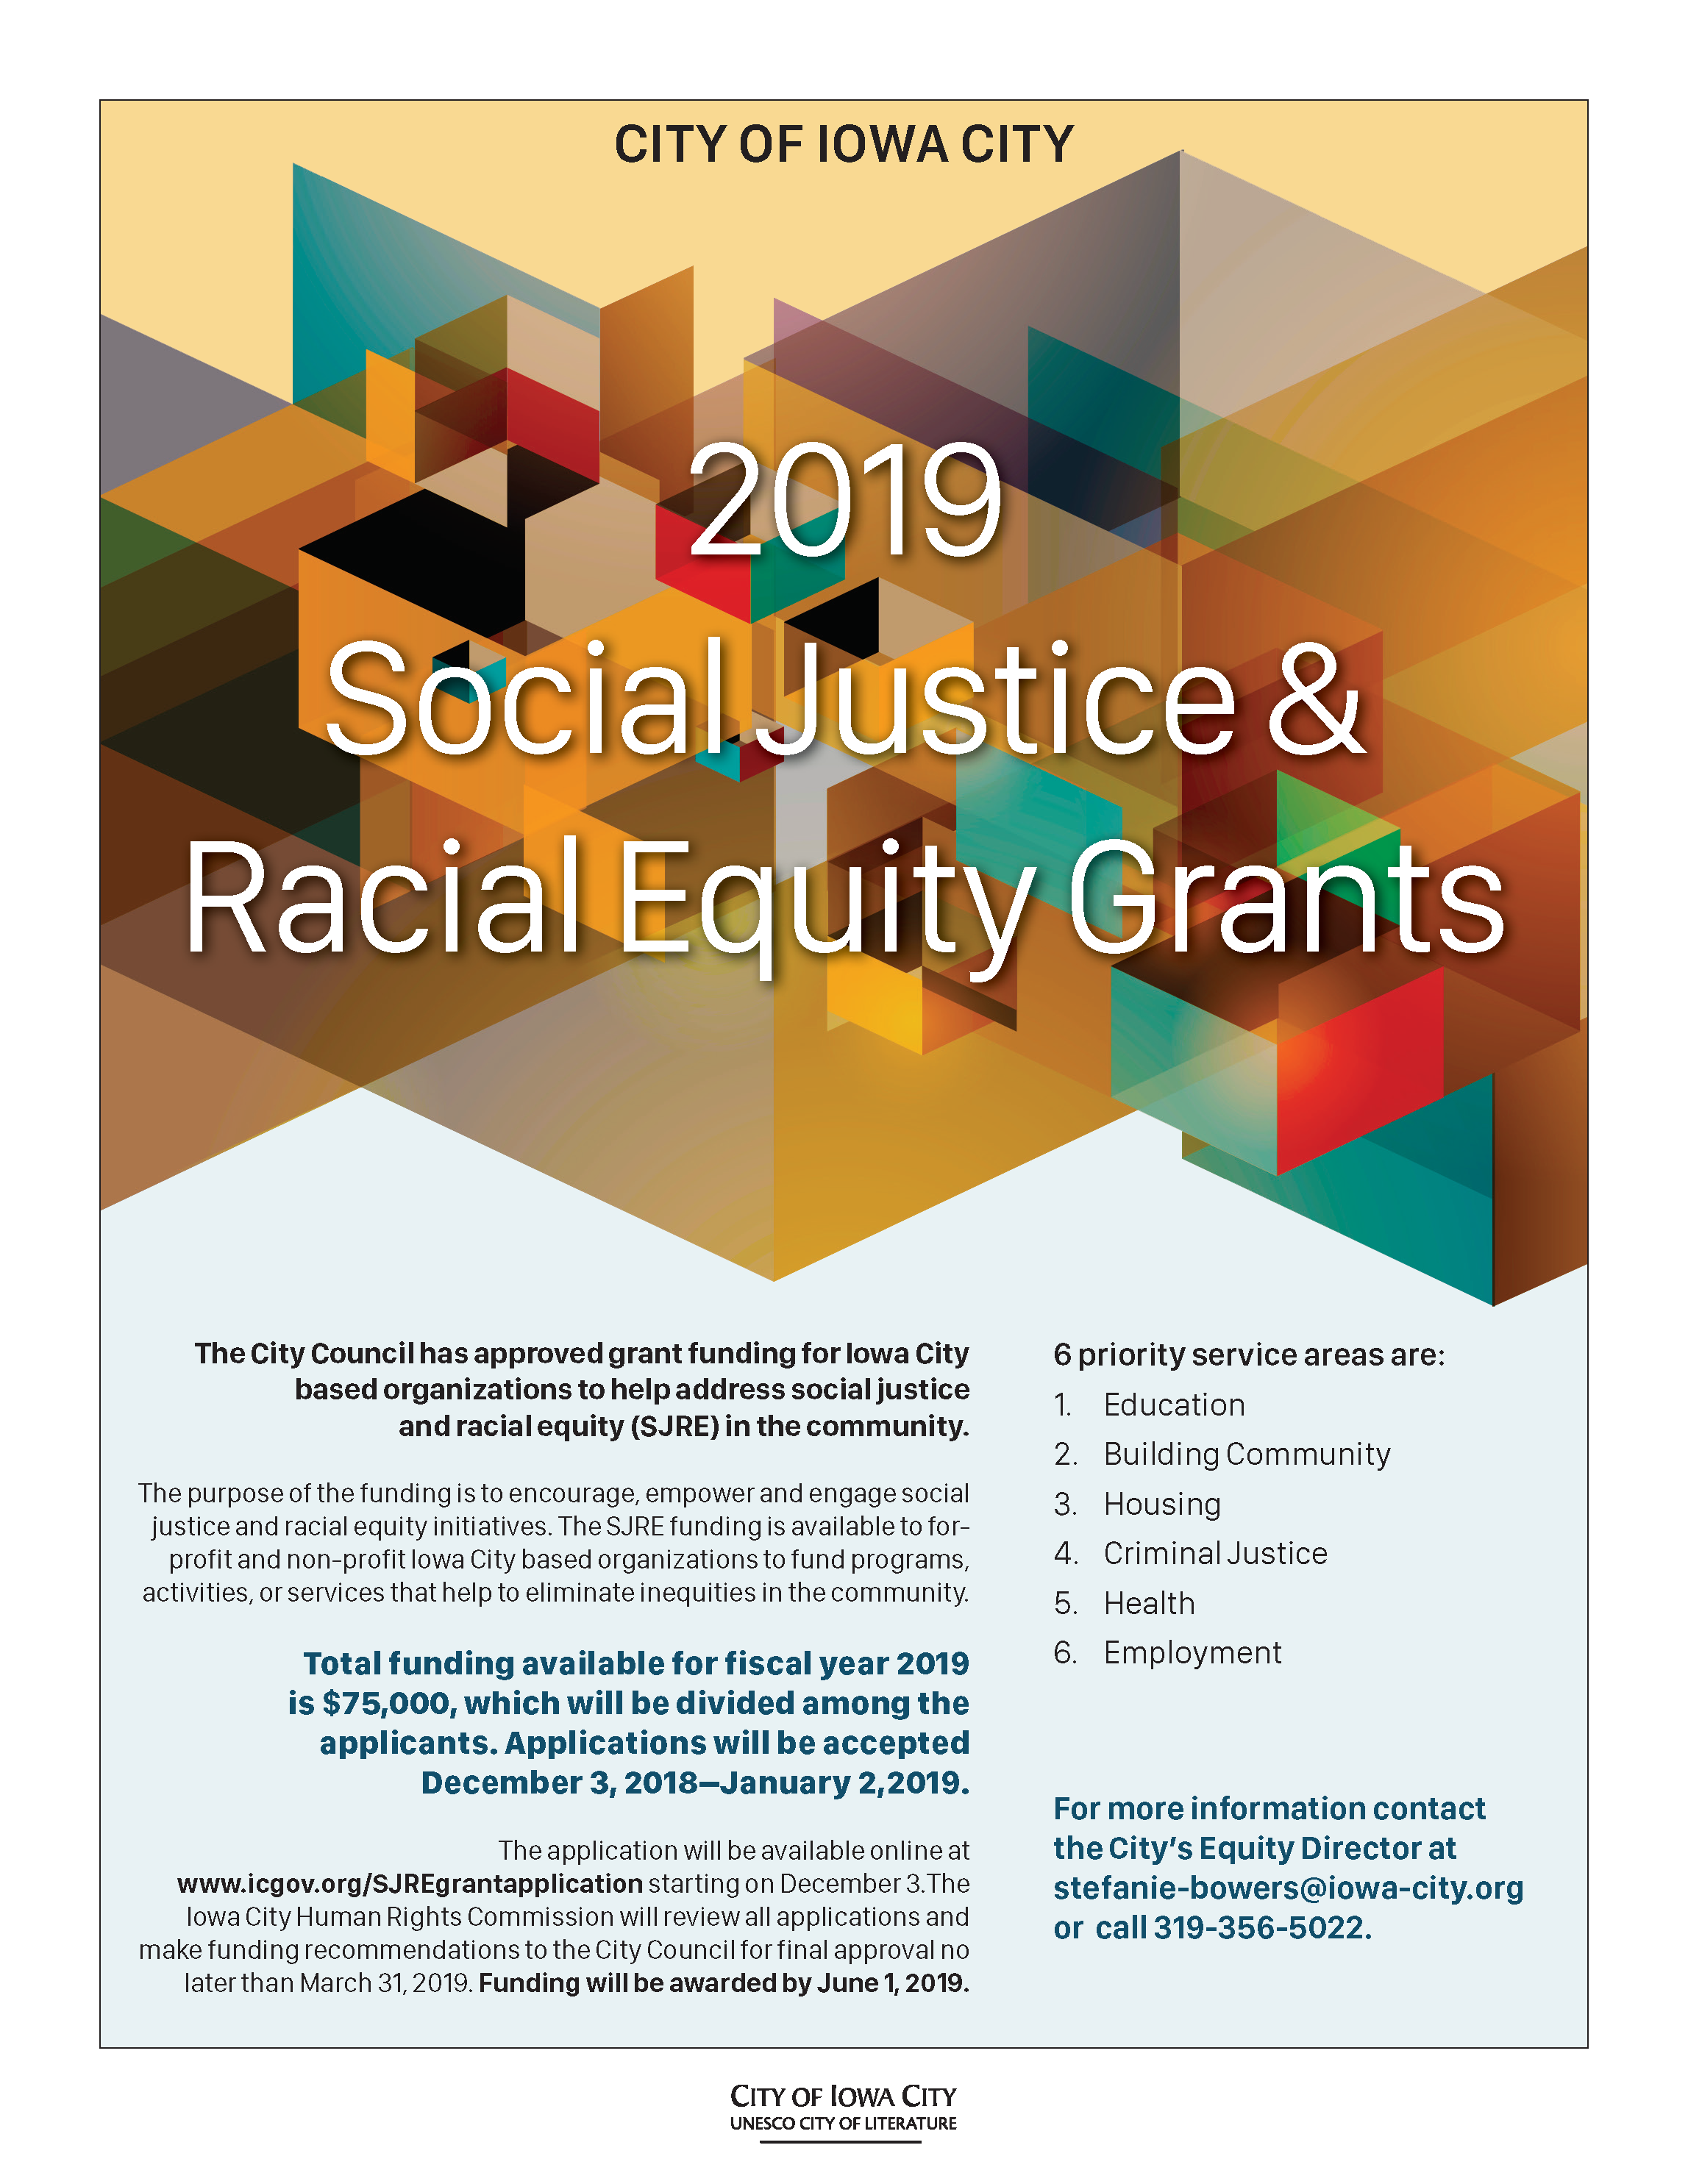 A flyer promoting the social justice racial equity grant